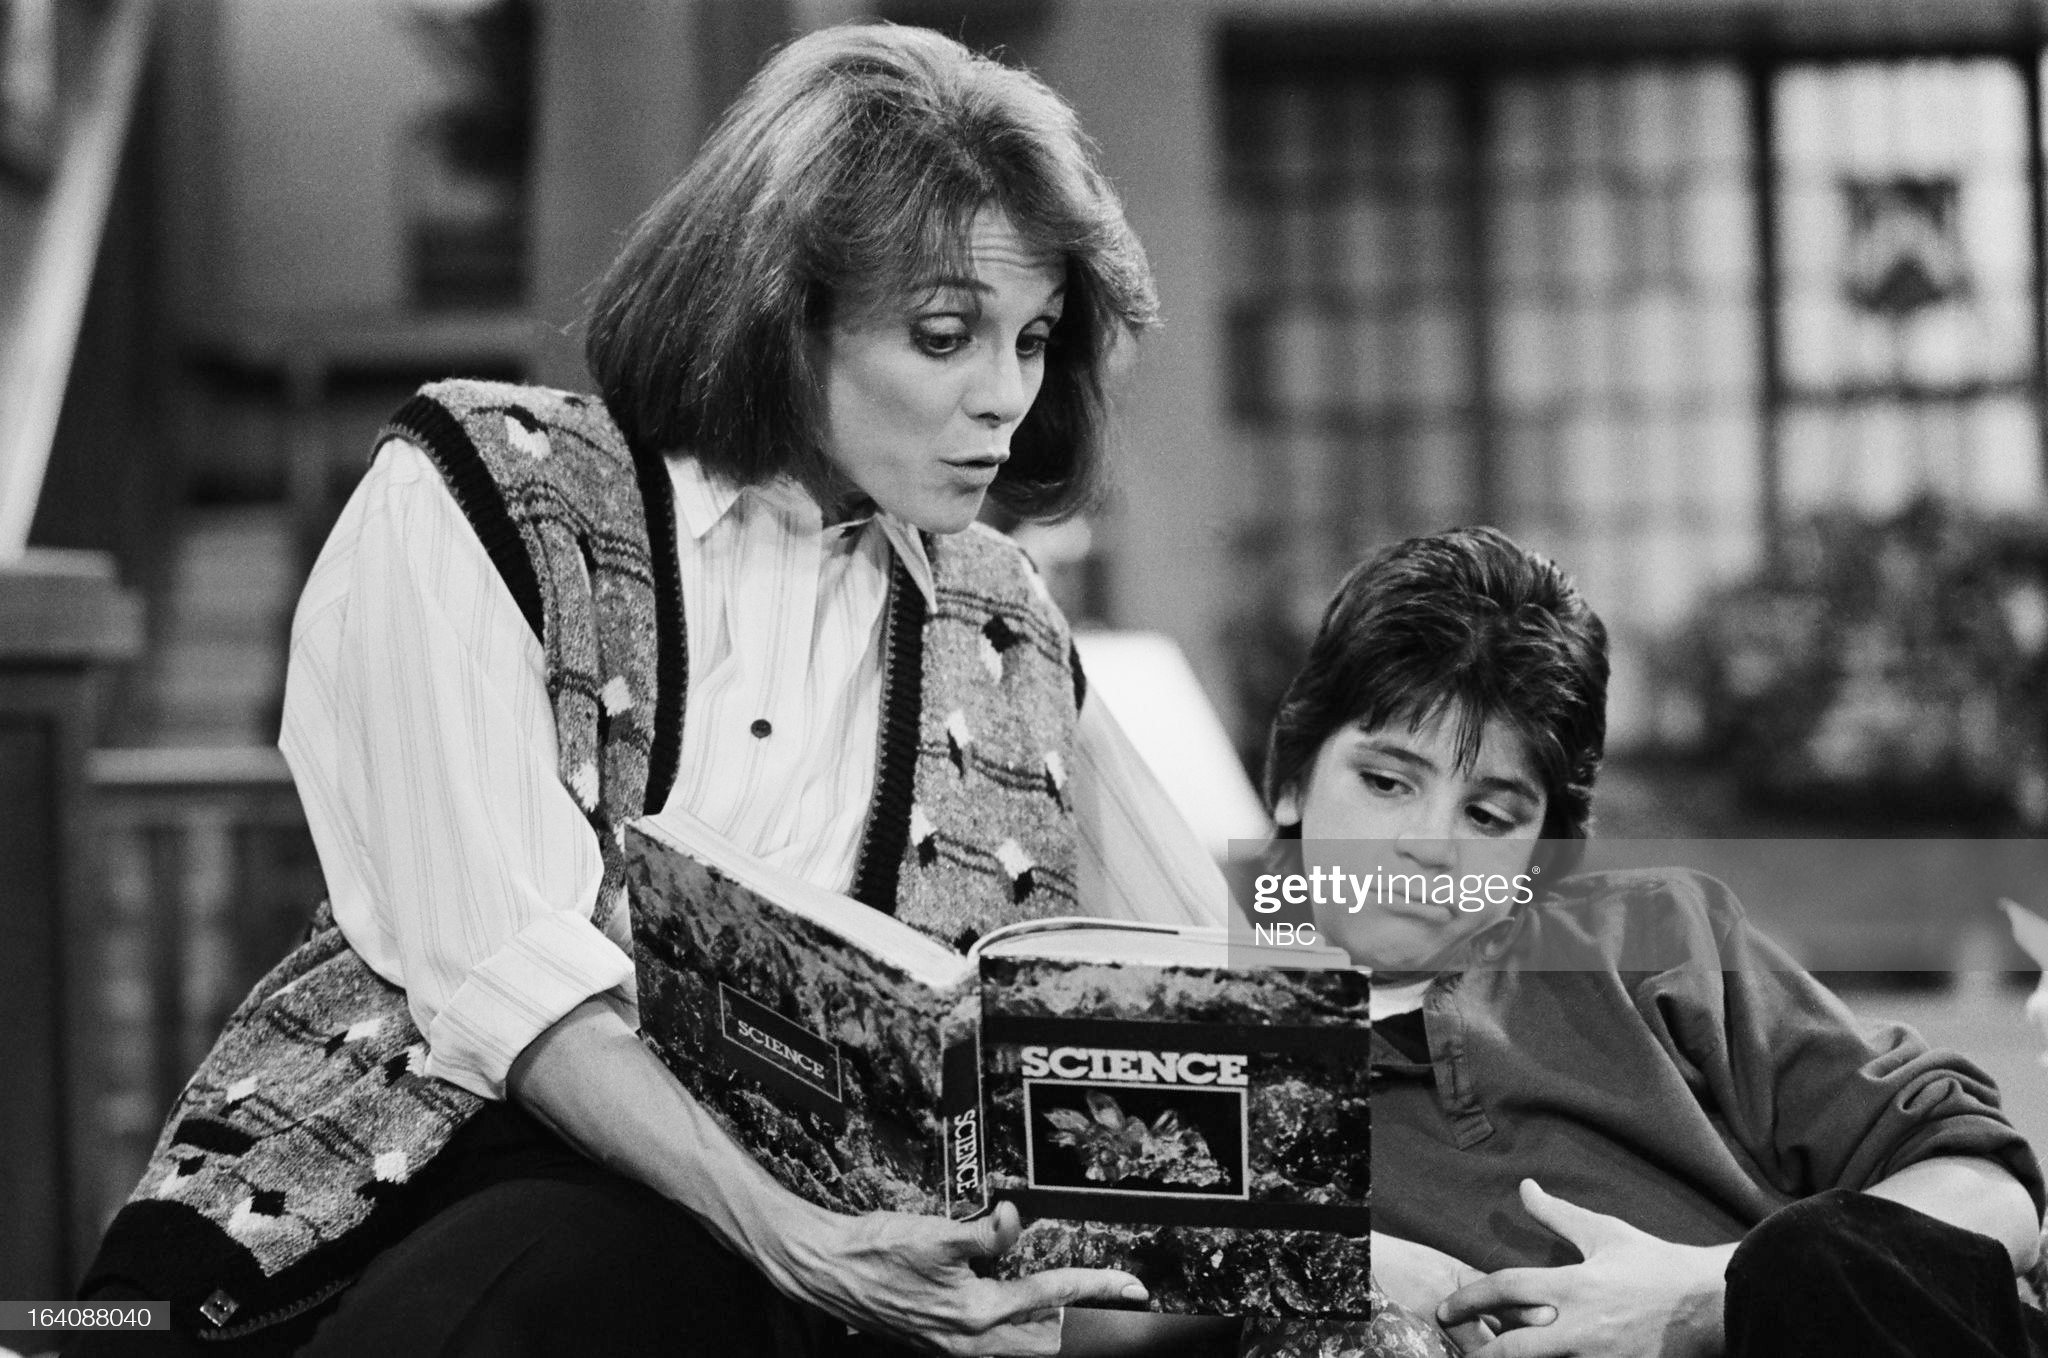 benefit-of-the-doubt-episode-105-pictured-valerie-harper-as-valerie-picture-id164088040